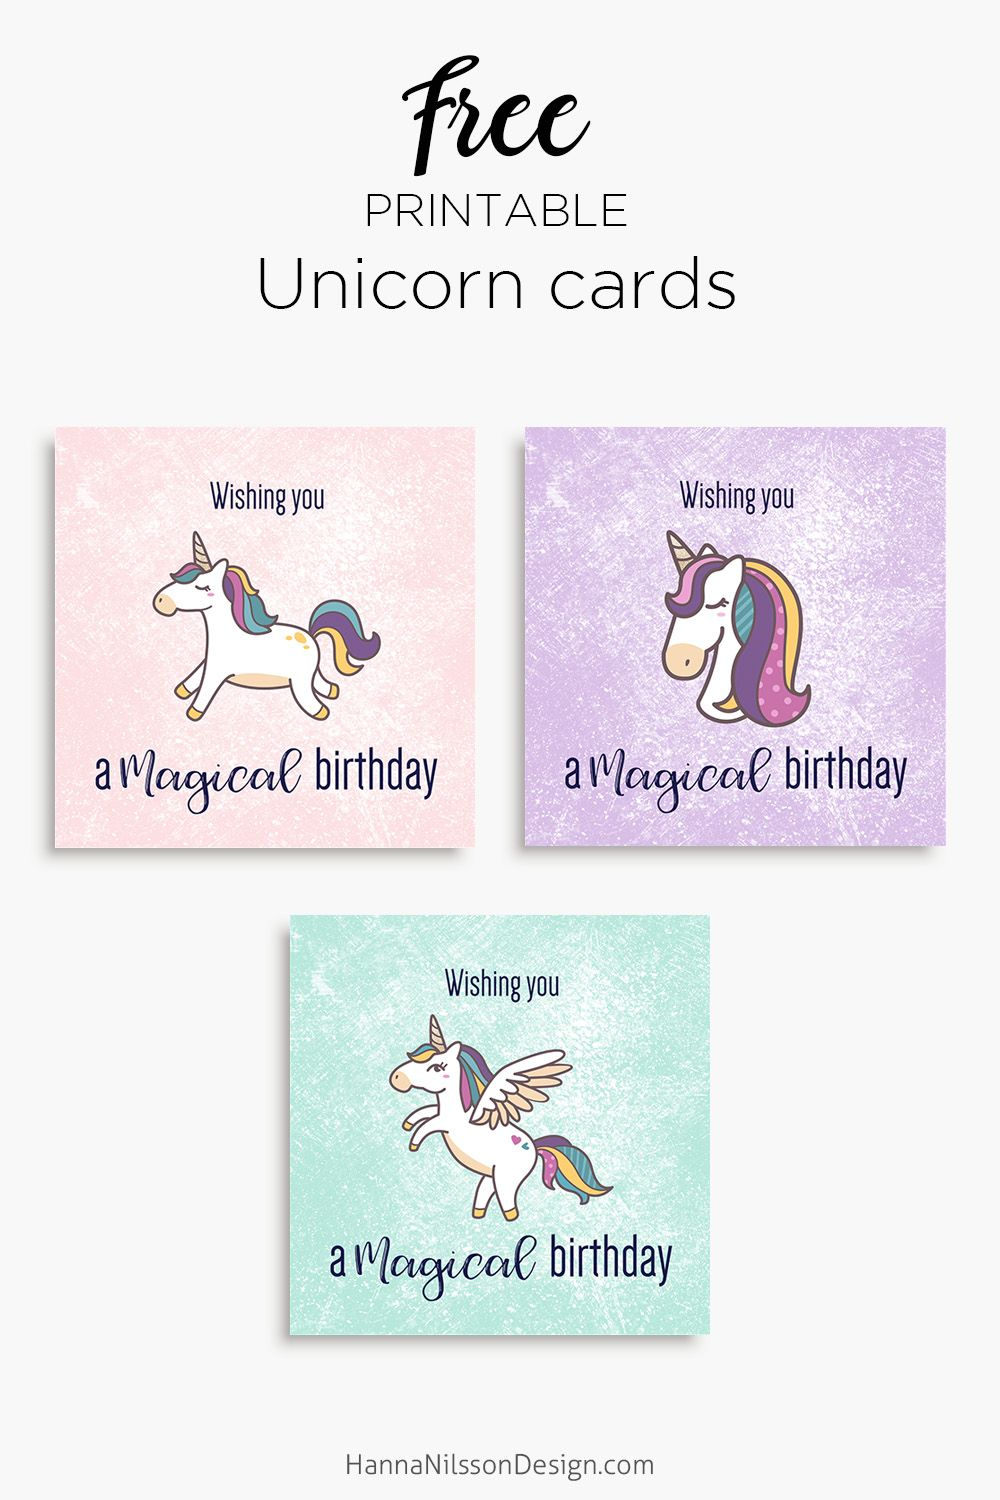 Magical Unicorn Birthday Printable Cards | Tis' Better To Give - Free Printable Cards